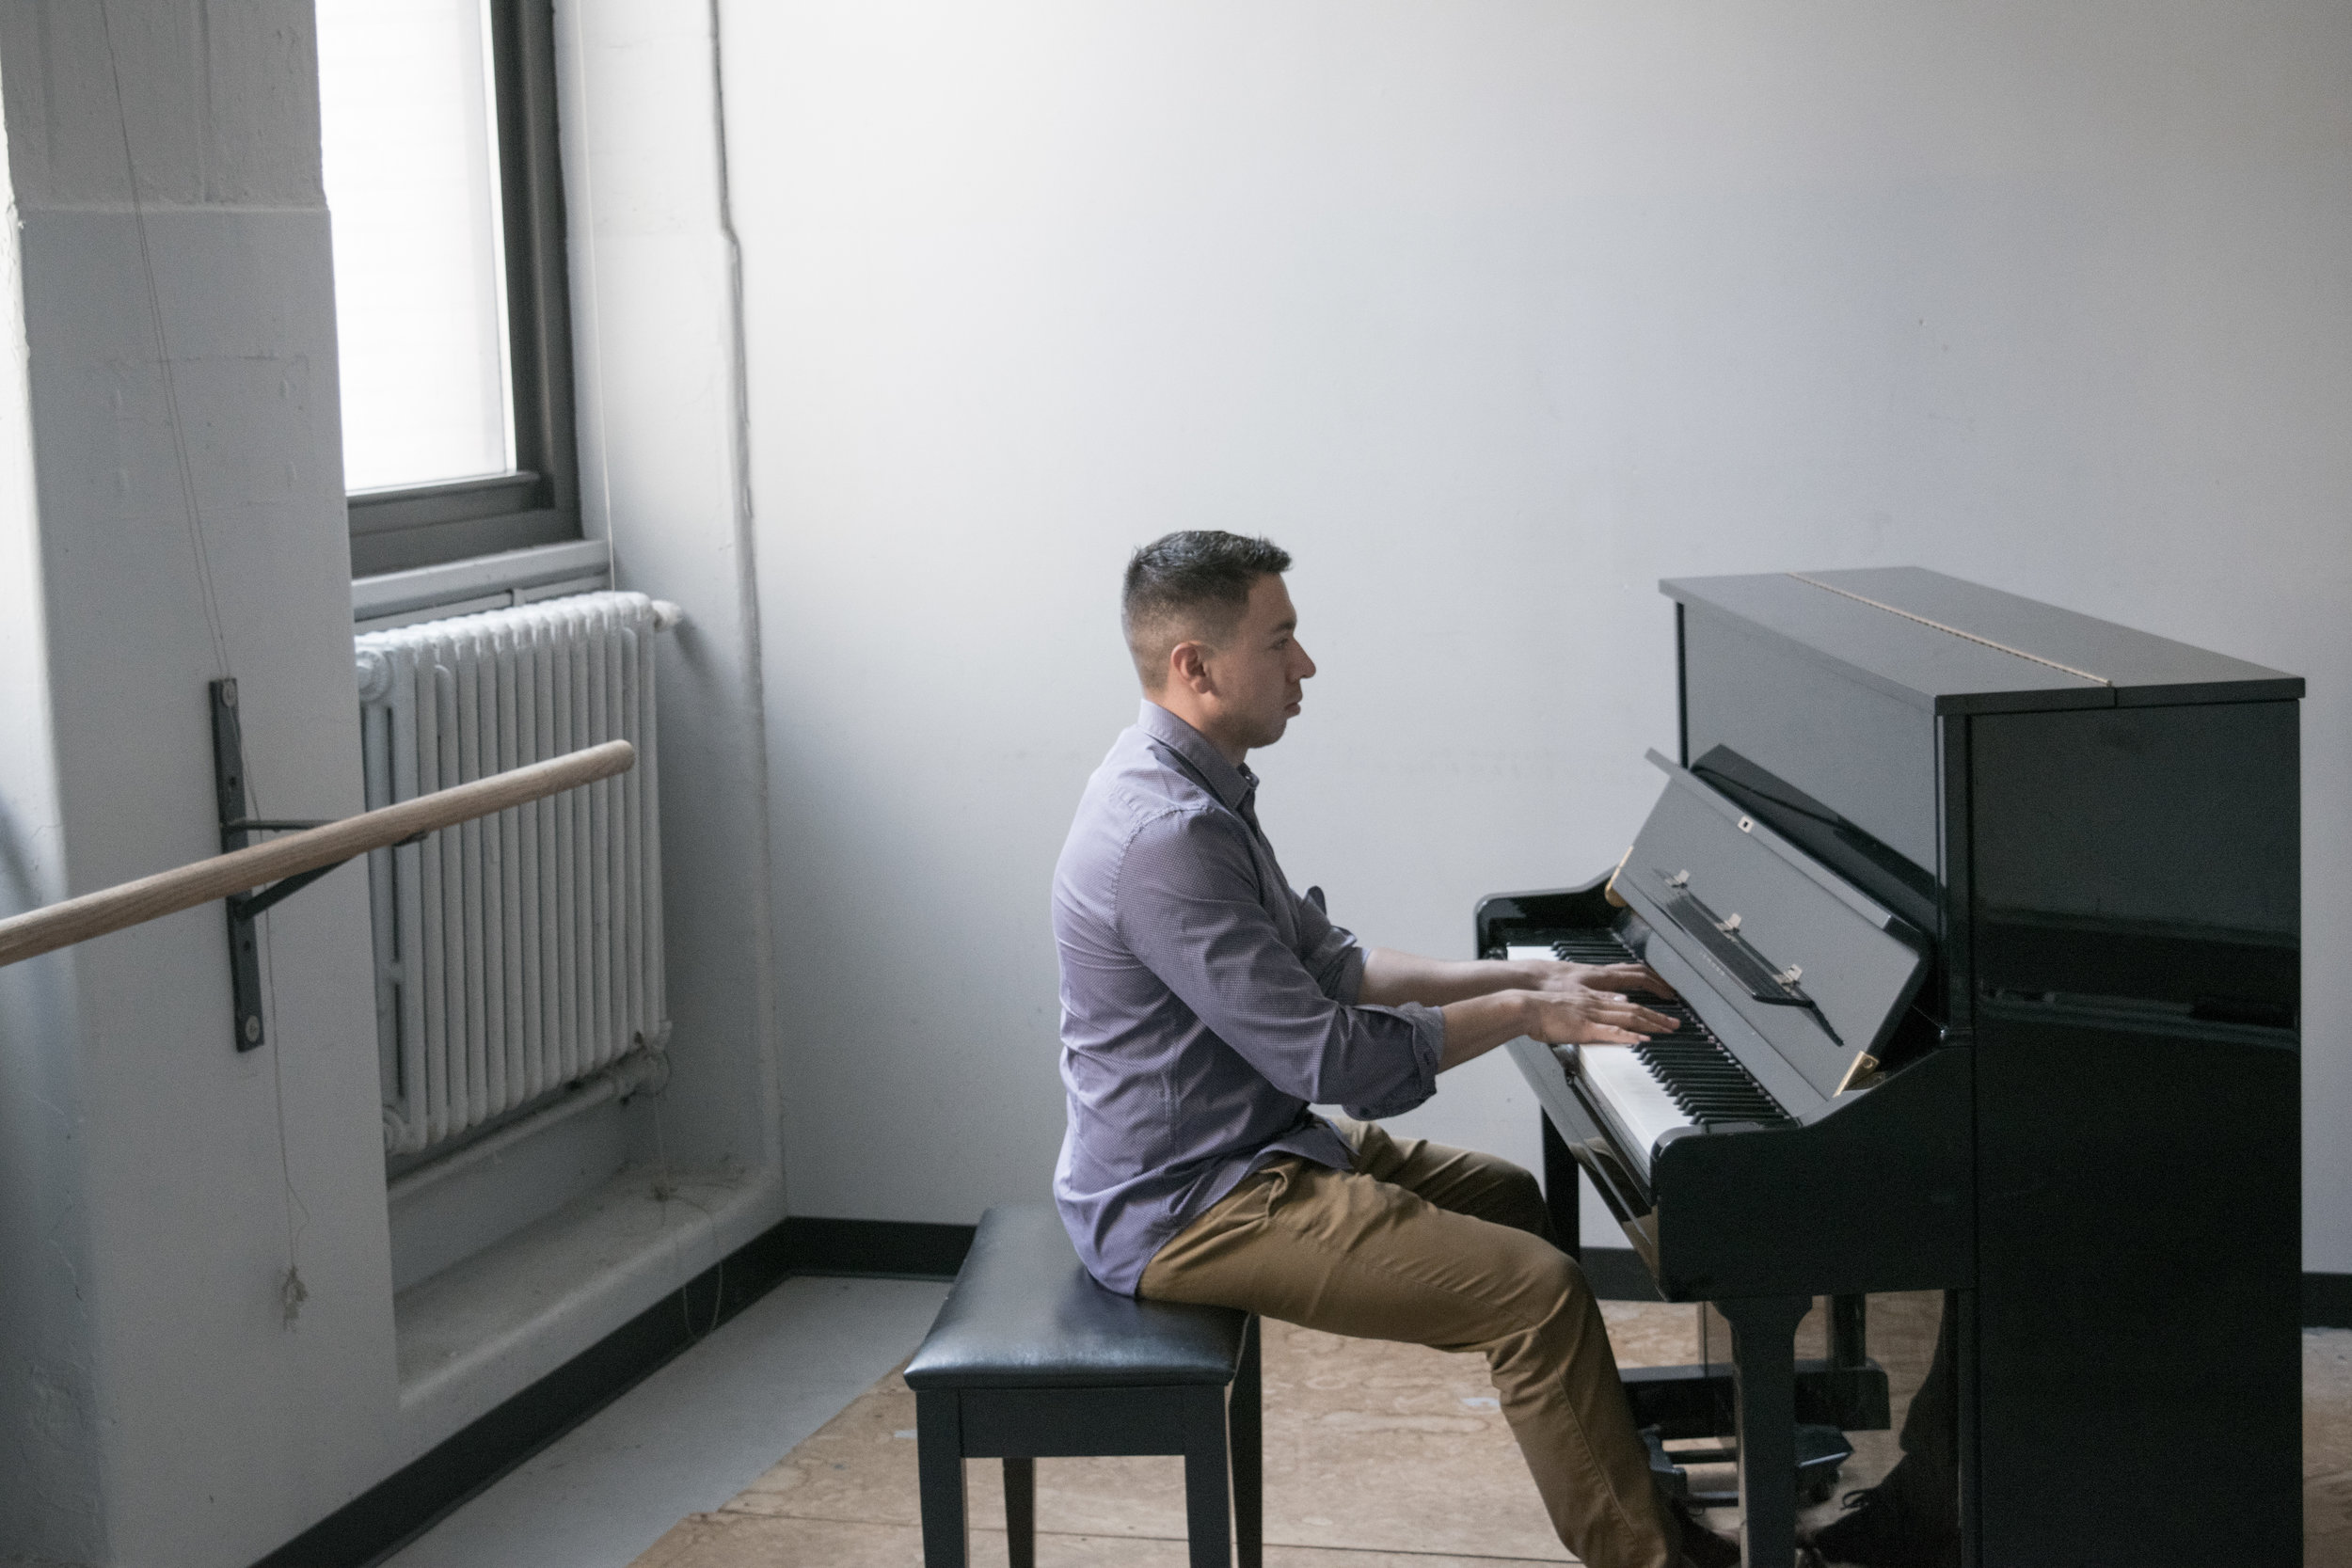 Mejia has been teaching at New York University as a Jazz Piano Instructor since he began his Master's Degree Program at NYU